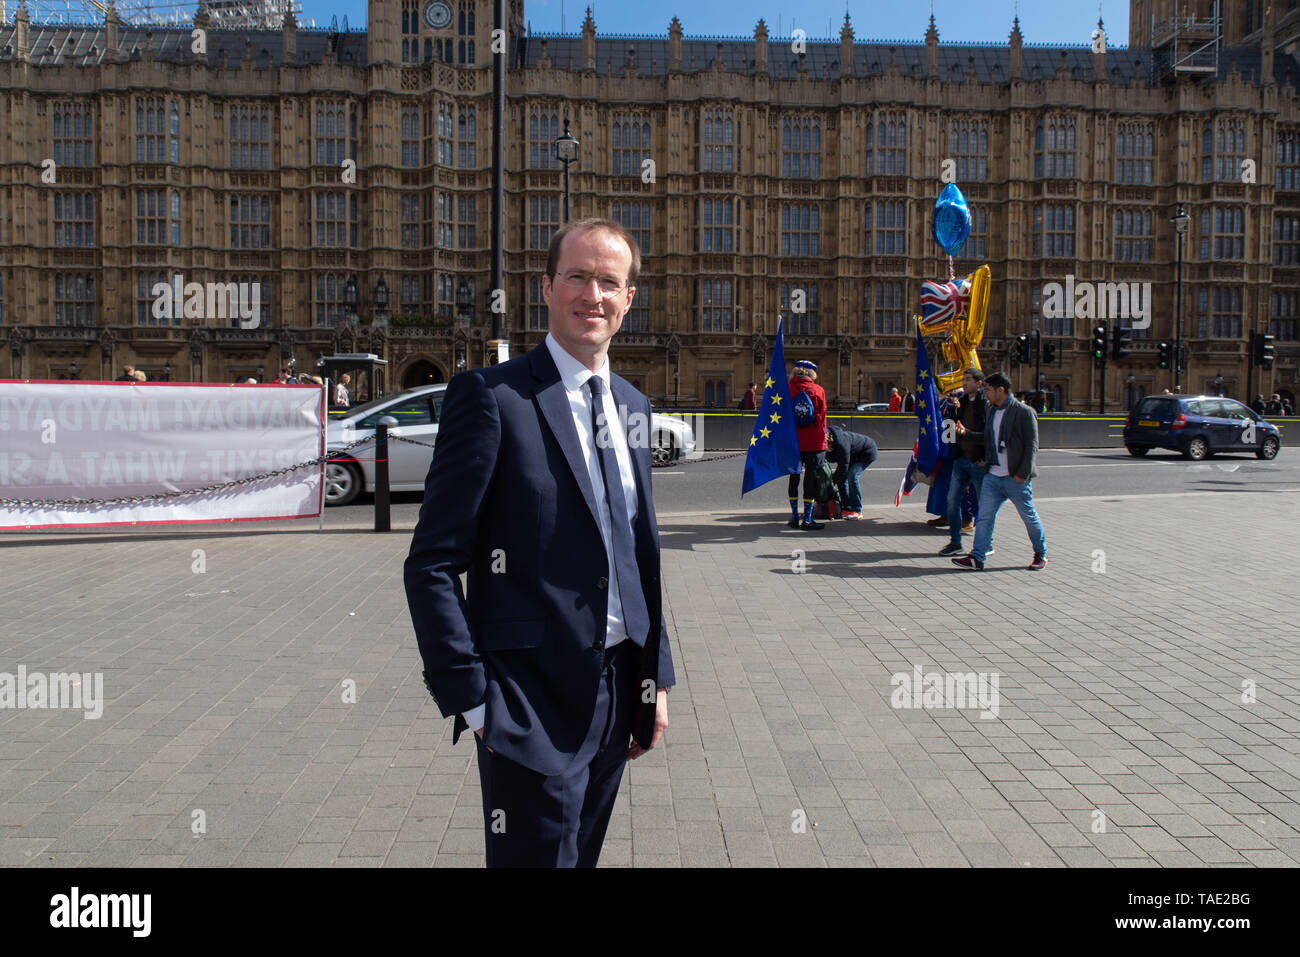 Matthew Elliott is a British political strategist and lobbyist involved in several successful referendum campaigns, including the Brexit campaign. - Stock Image